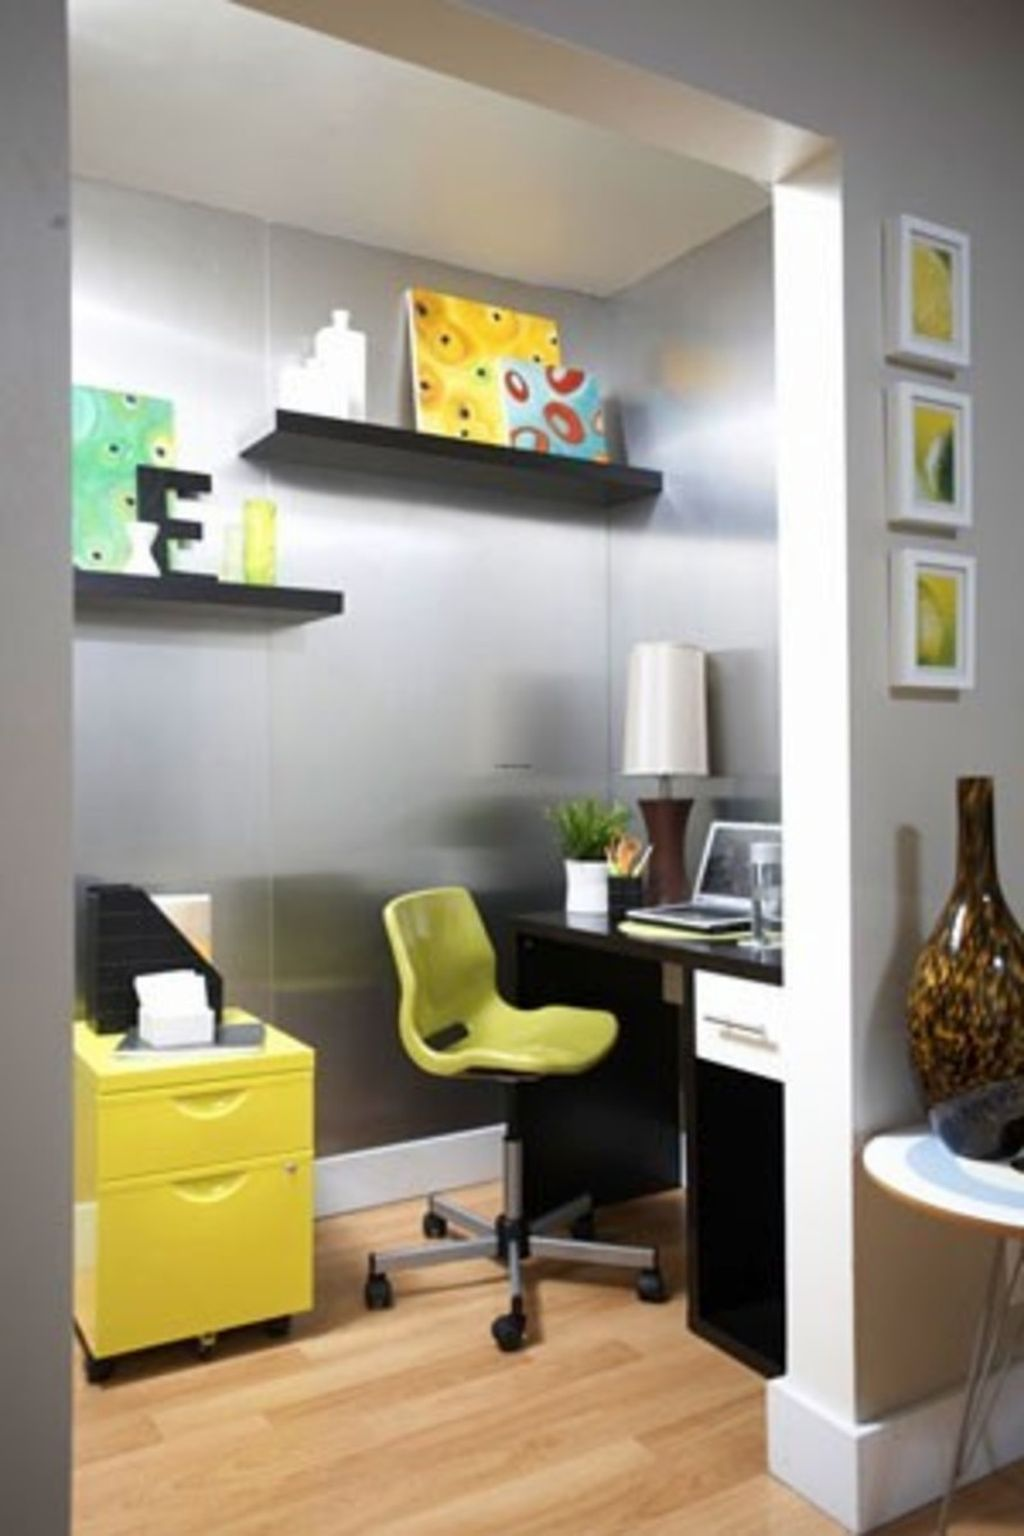 Home office design ideas for small spaces with small chair and floating shelves - Design home office space easily ...